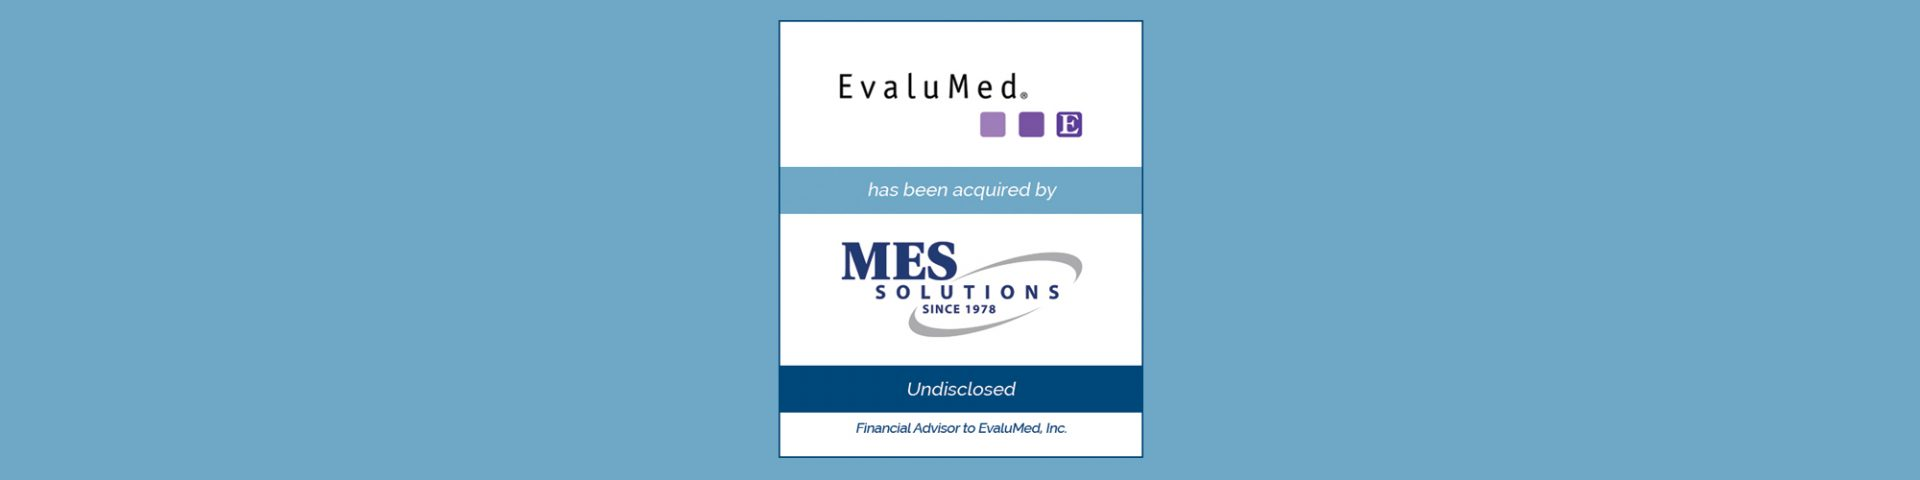 MES Group Acquires EvaluMed | Bailey Southwell & Co.